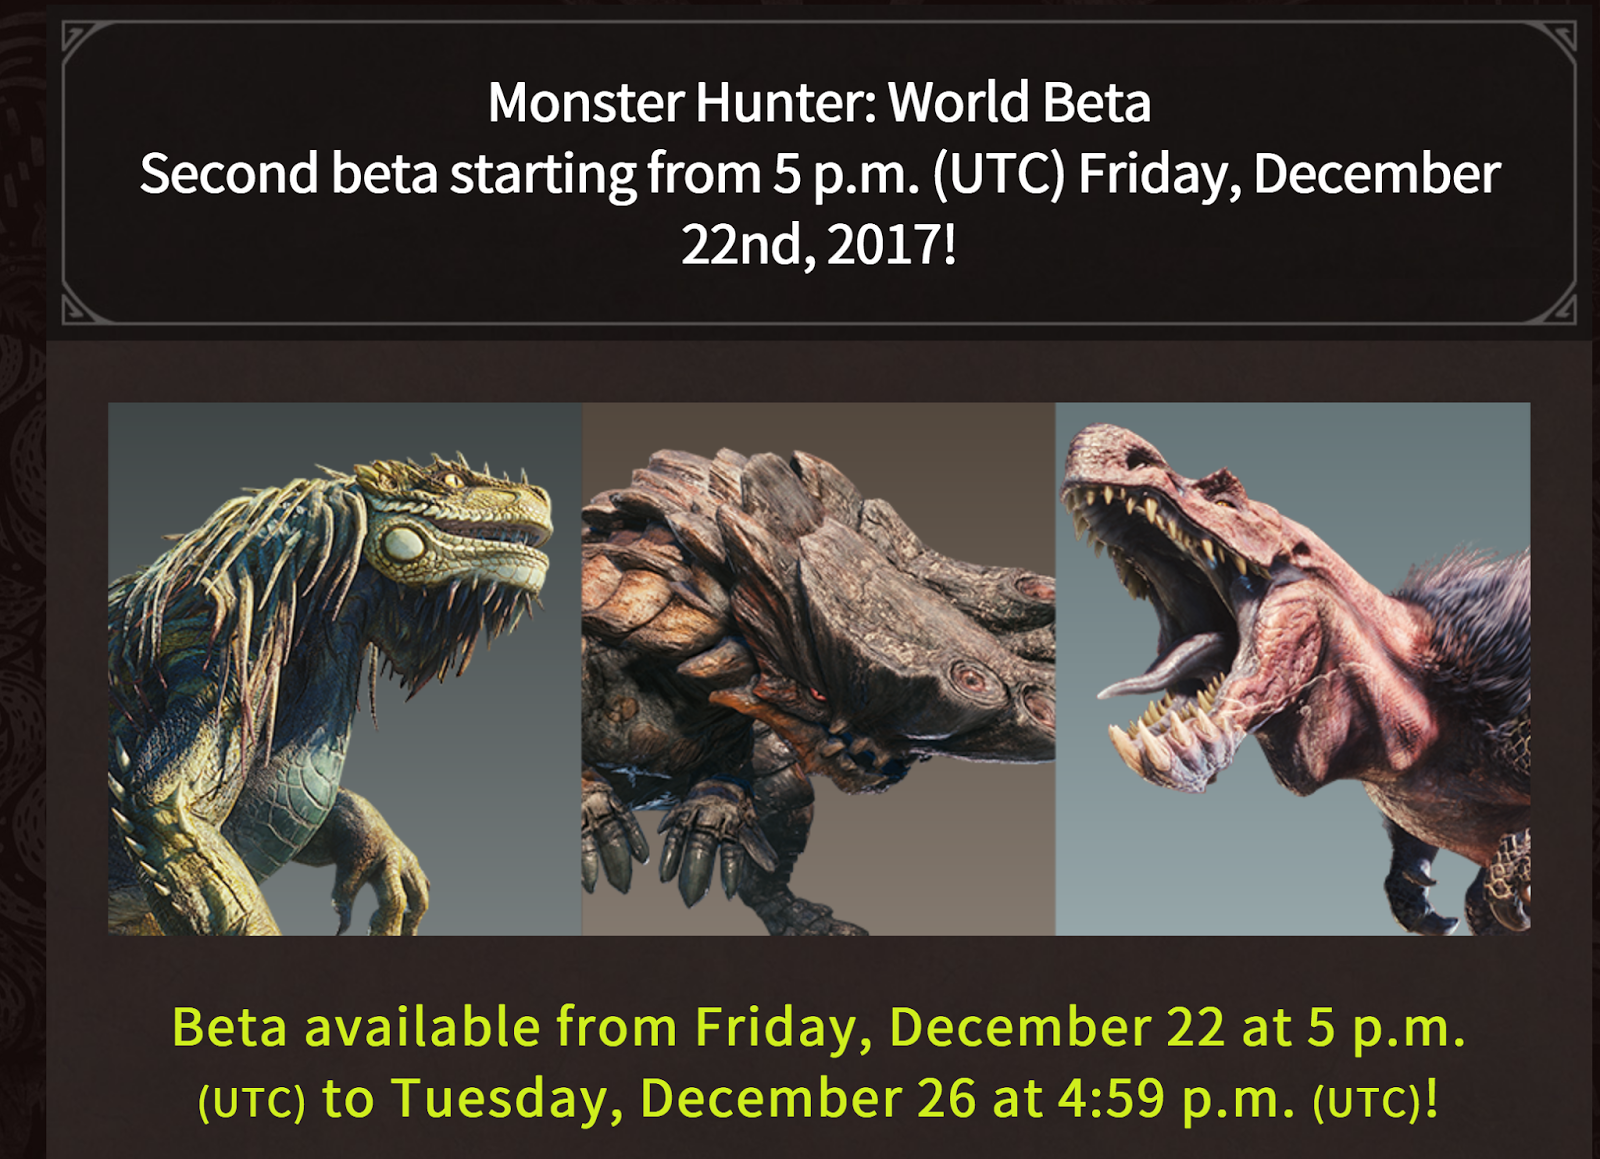 if you missed the last free beta access the monster hunter world demo will be available again world wide for playstation 4 even better this time around